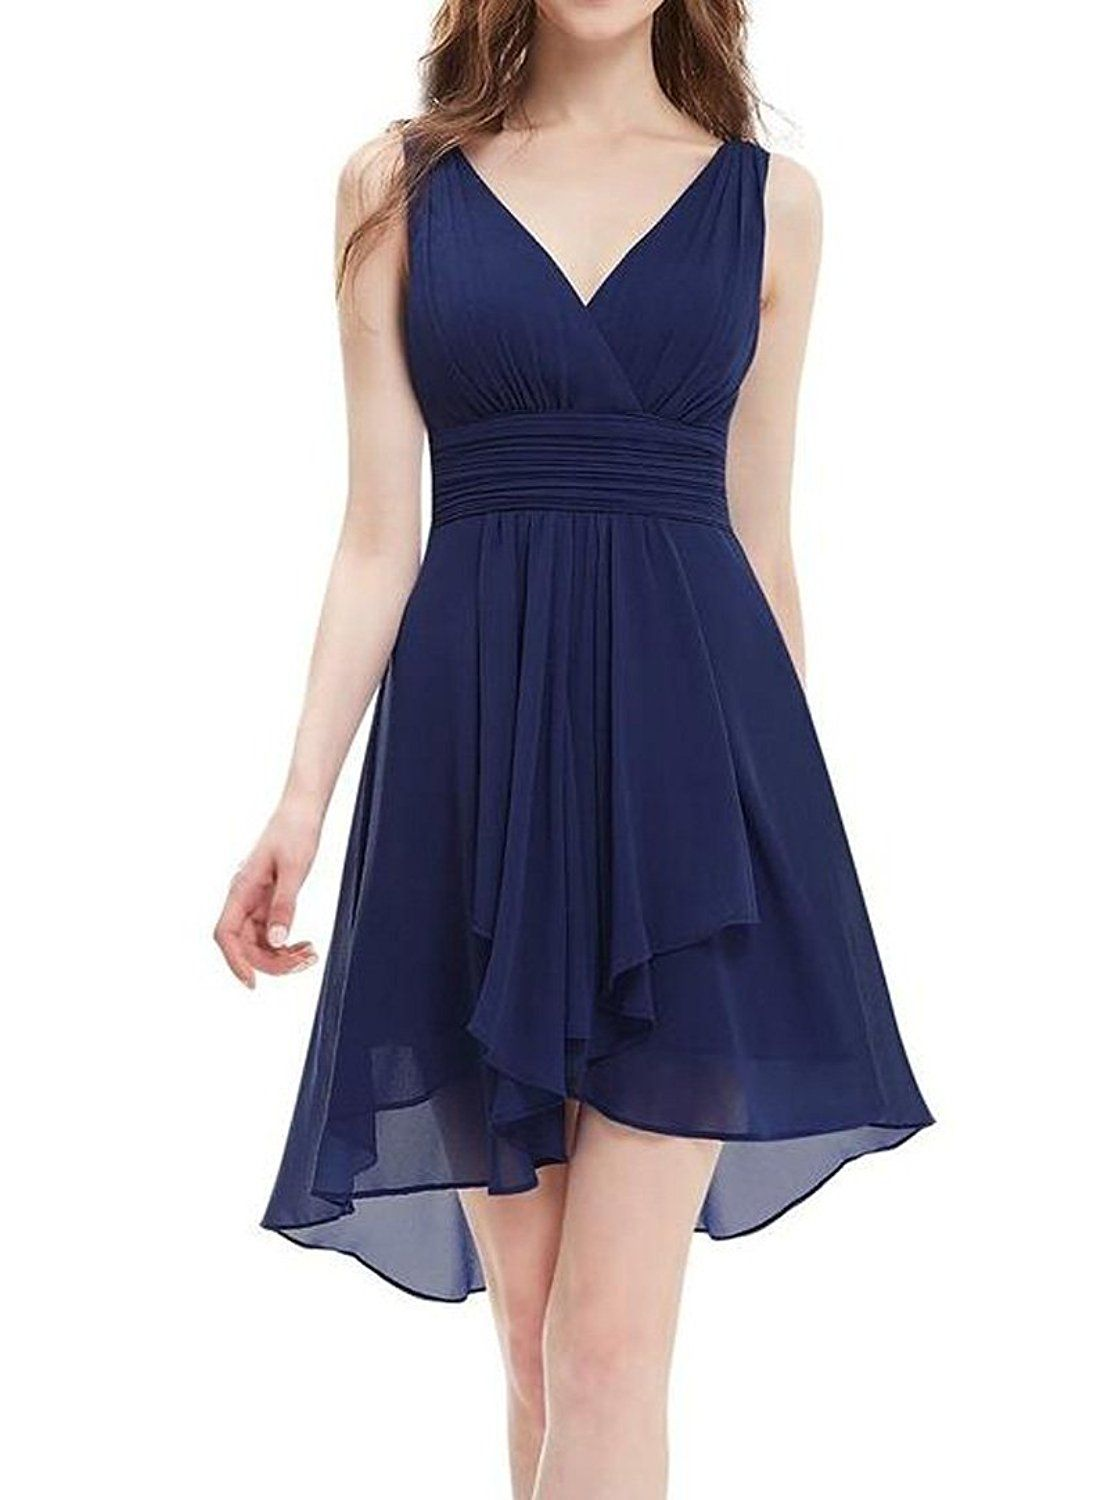 Aokaixin V Neck Empire Waist Ruffles Hi-Lo Backless Junior Bridesmaids Dress >>> Want to know more, click on the image. (This is an affiliate link and I receive a commission for the sales)